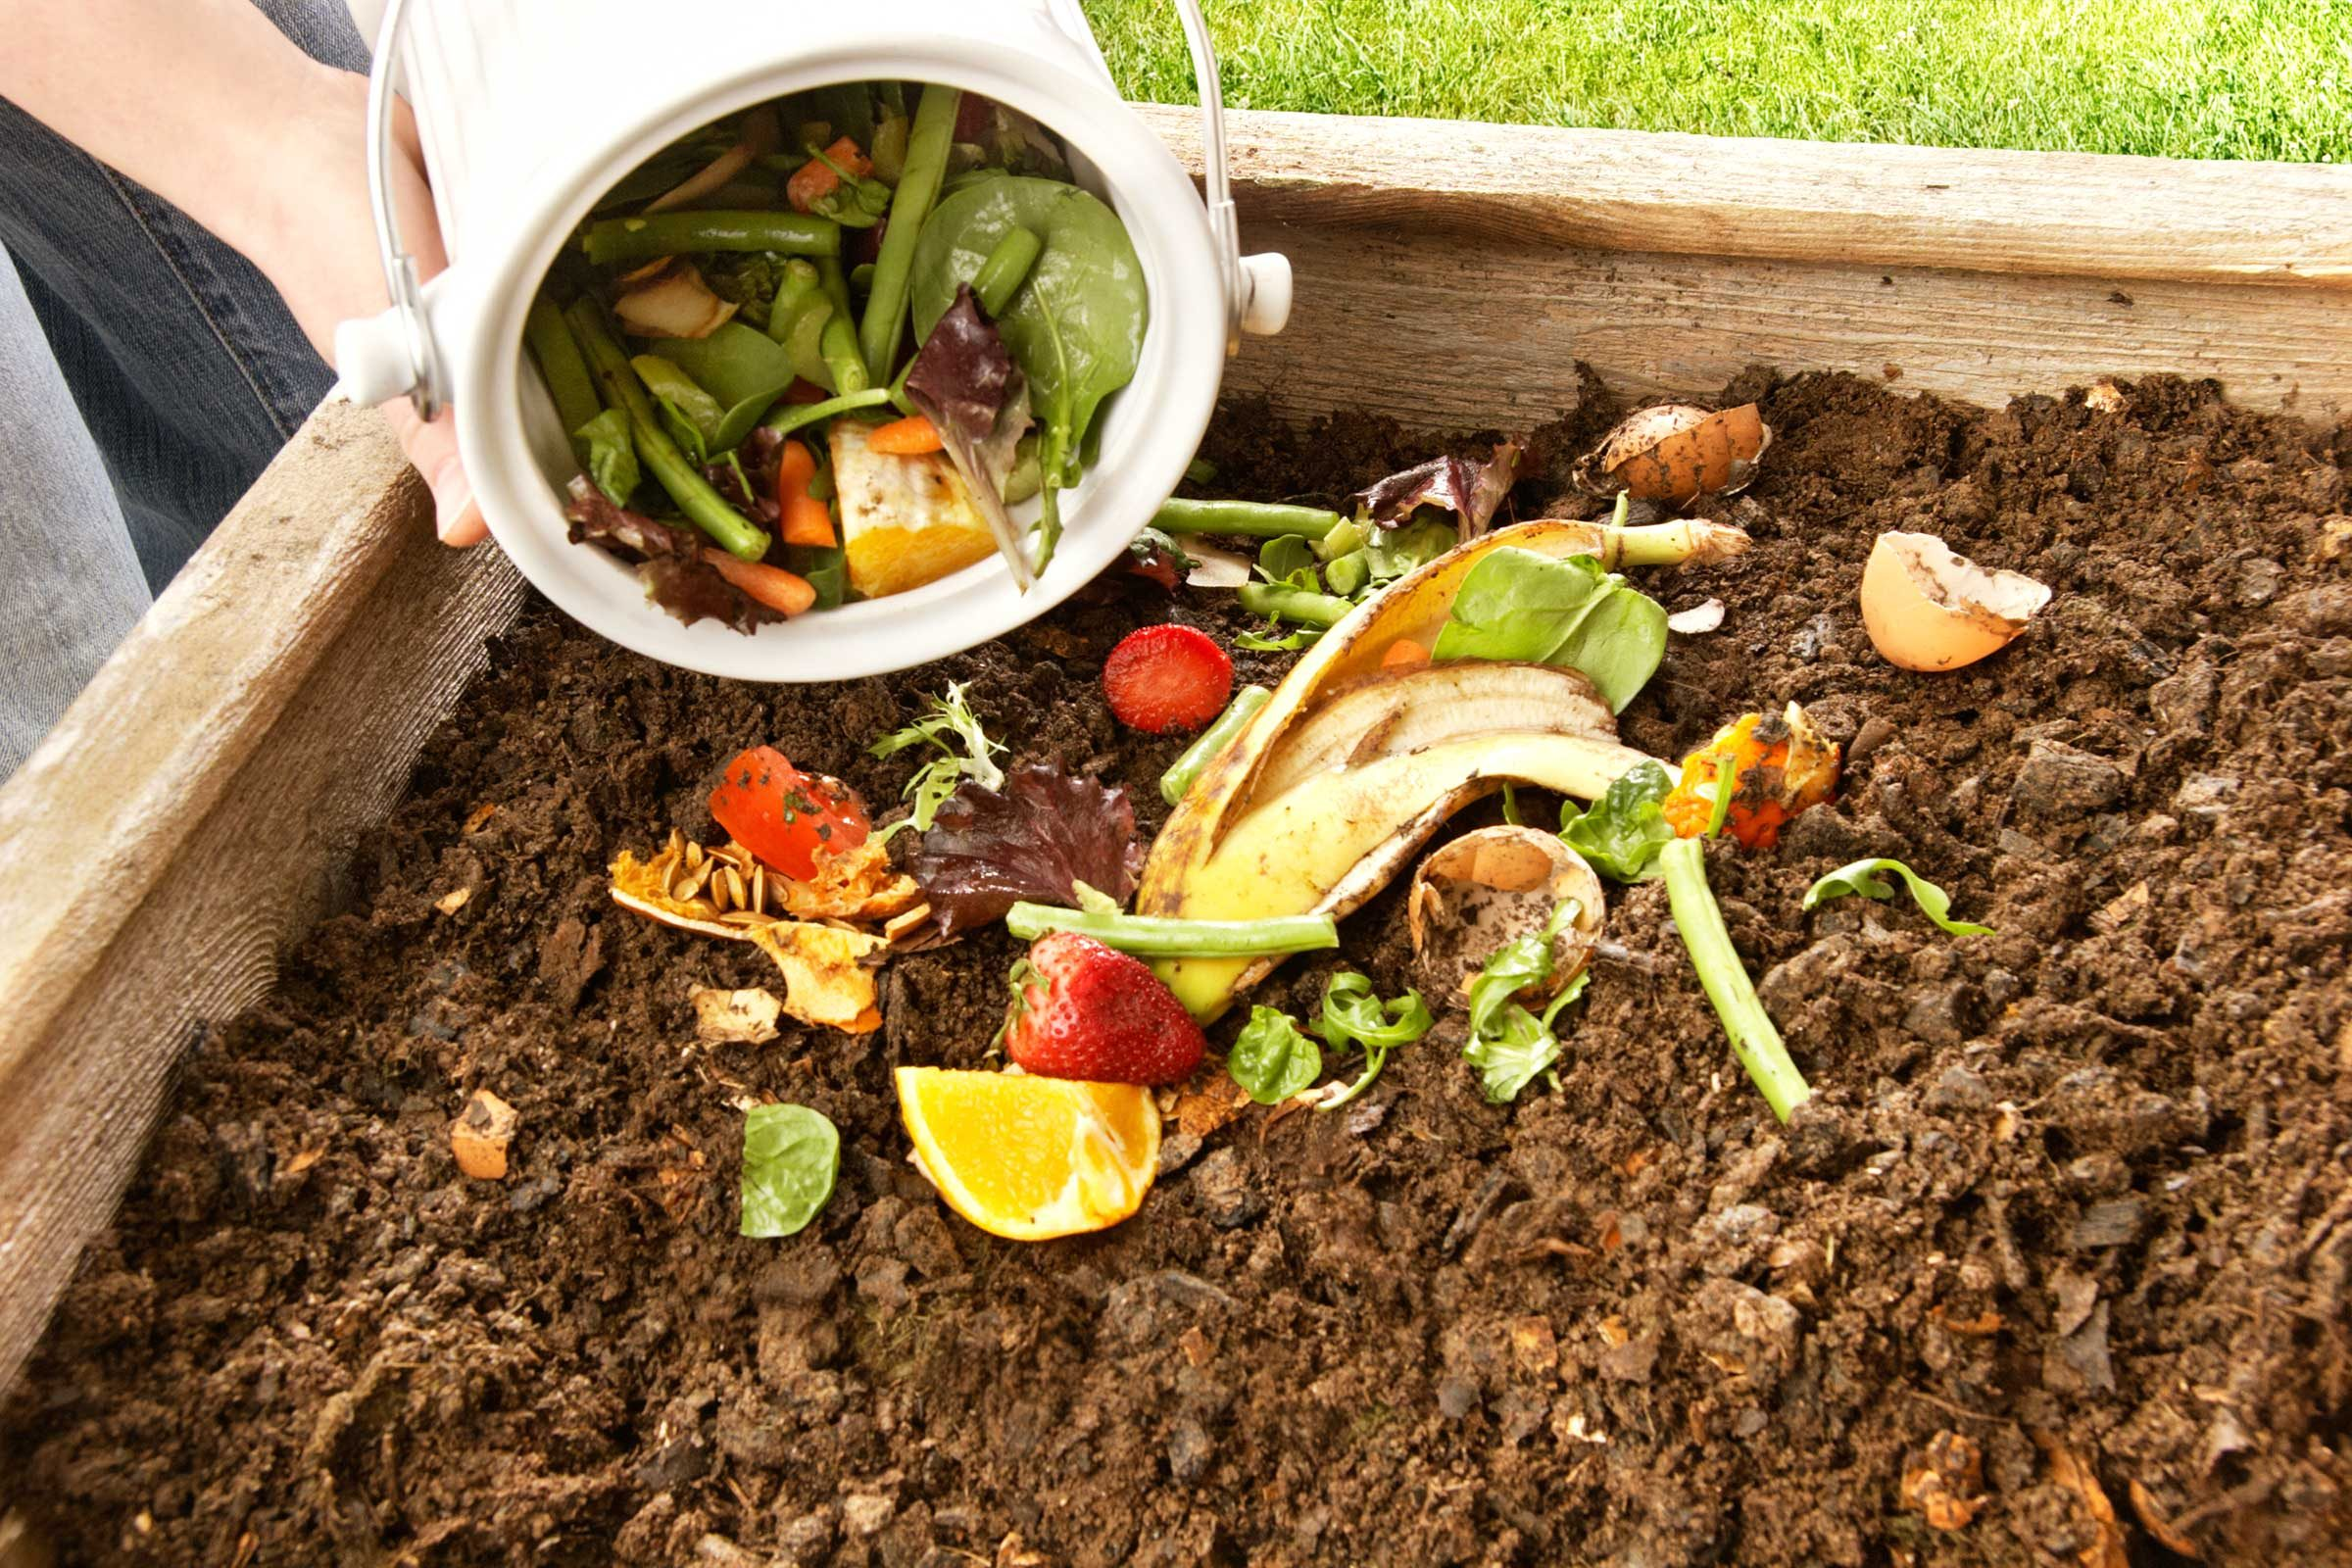 how to compost 10 simple steps to get started reader u0027s digest